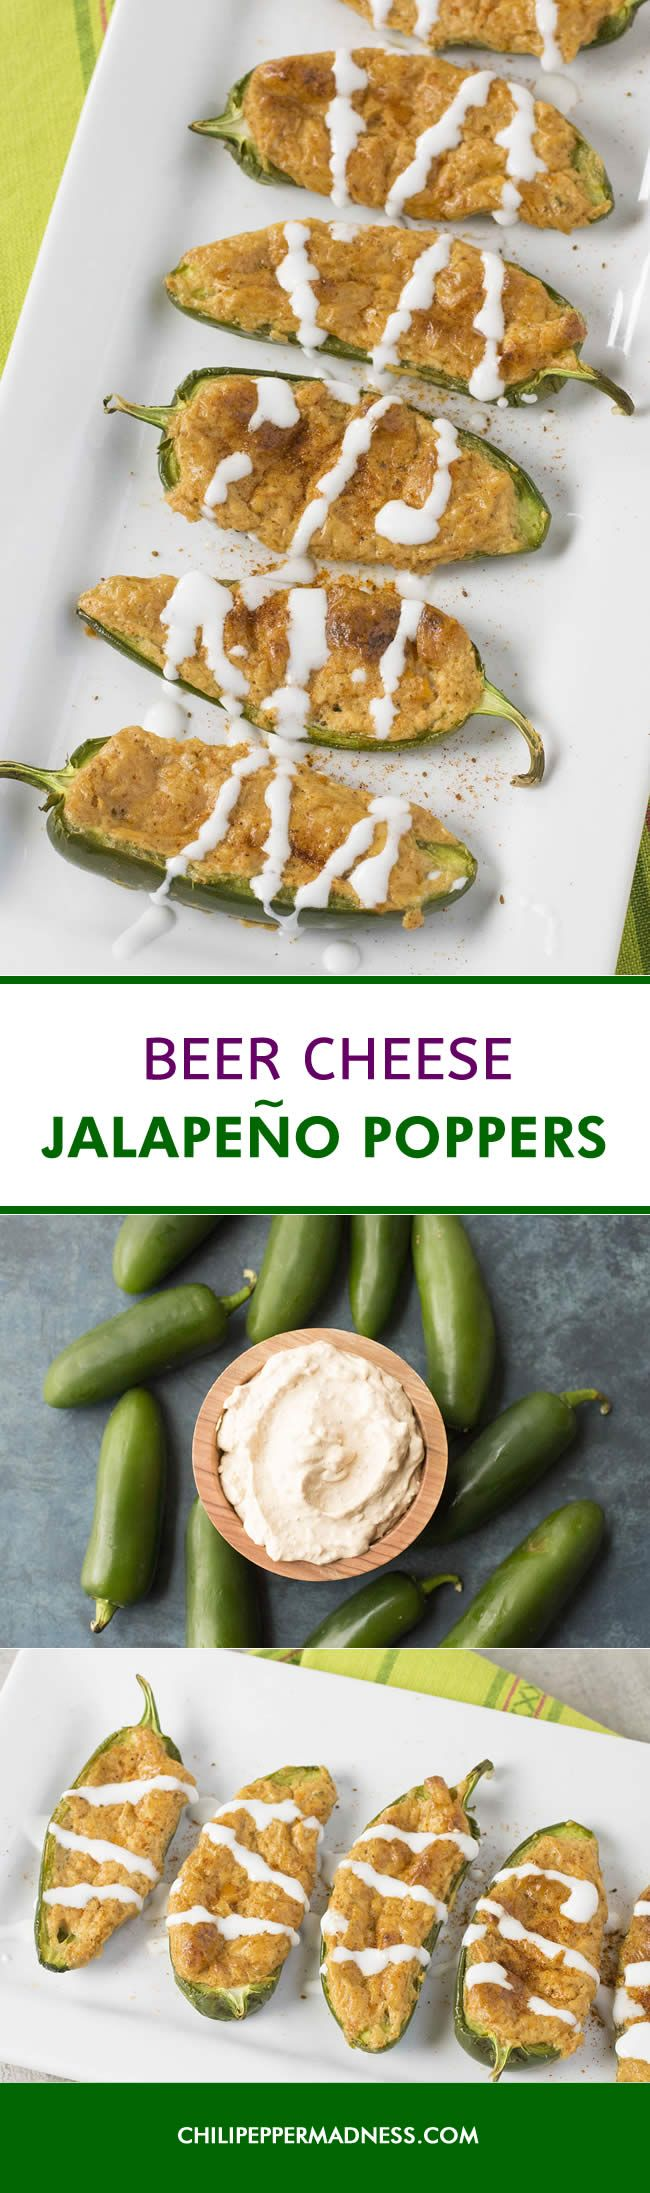 Beer Cheese Jalapeno Poppers - A recipe for jalapeno poppers stuffed with creamy, homemade beer cheese. These are the ultimate appetizer for game day or any party. Bake them up and watch them disappear.